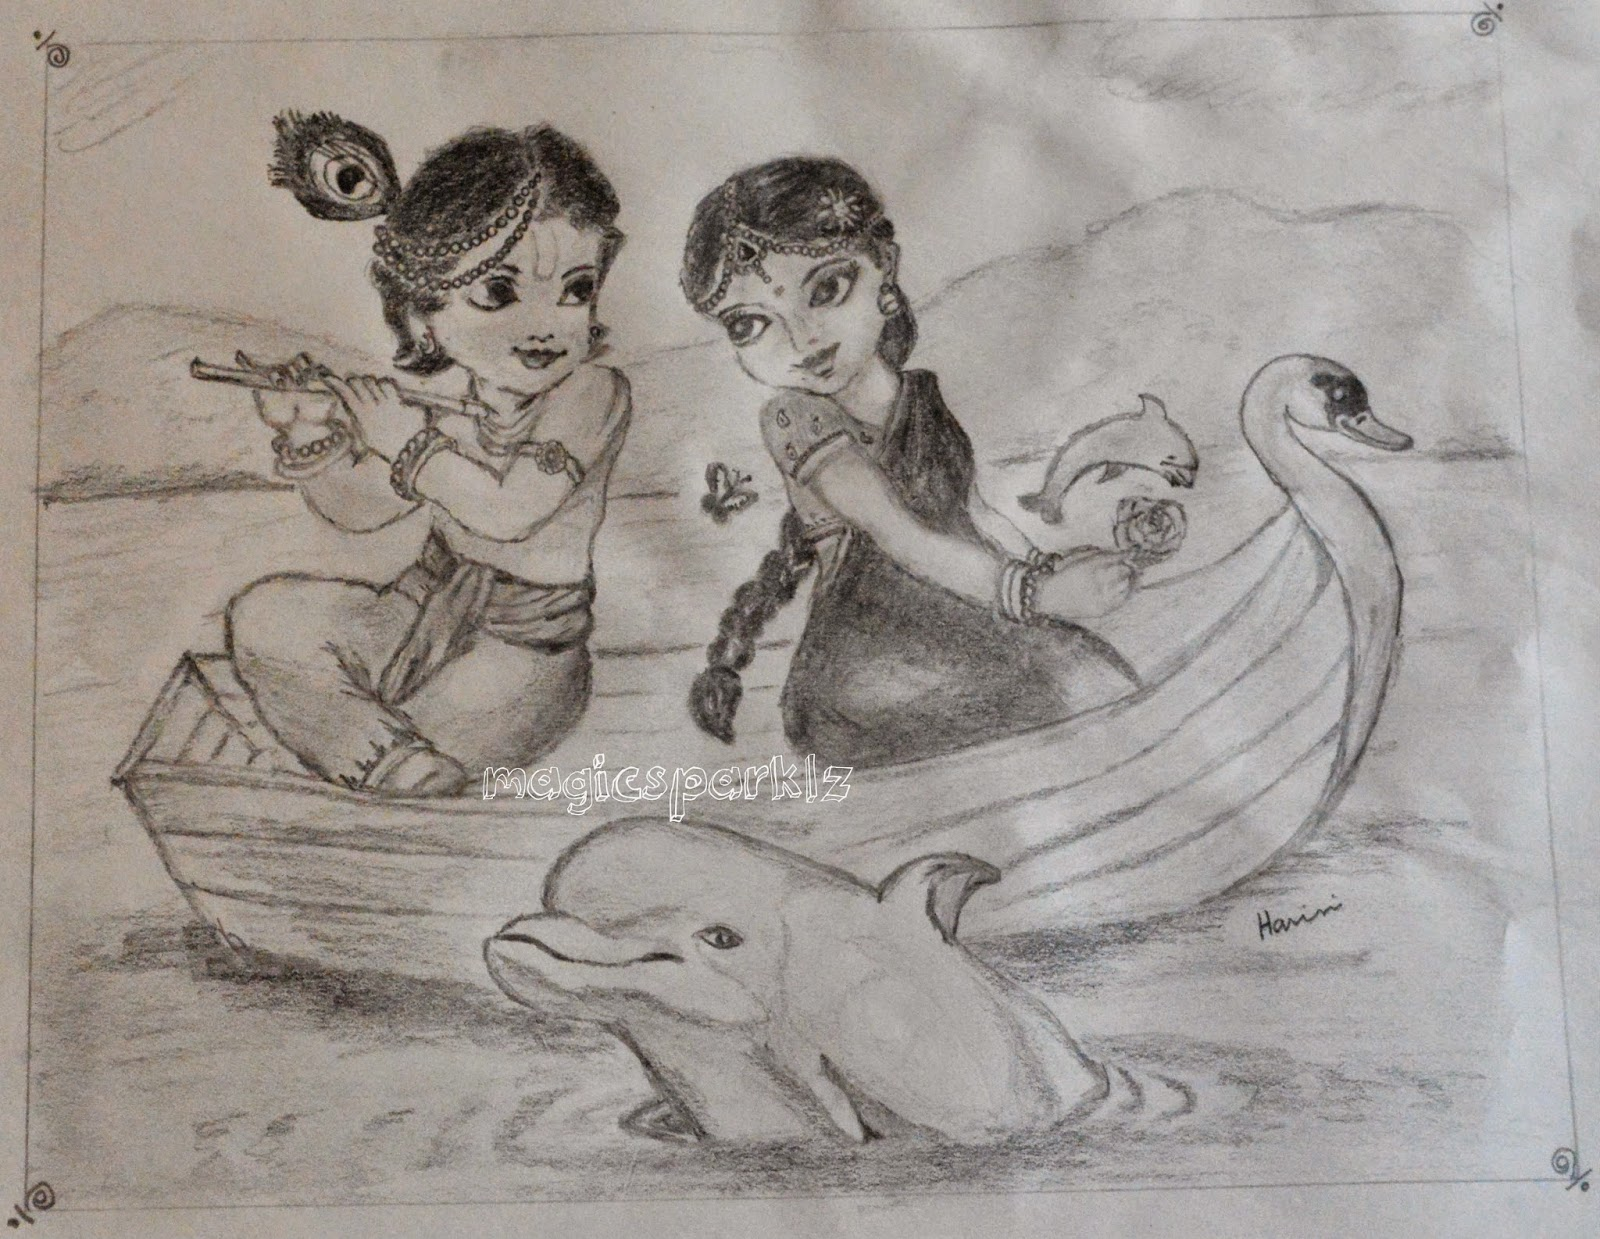 pencil sketch Radhakrishna